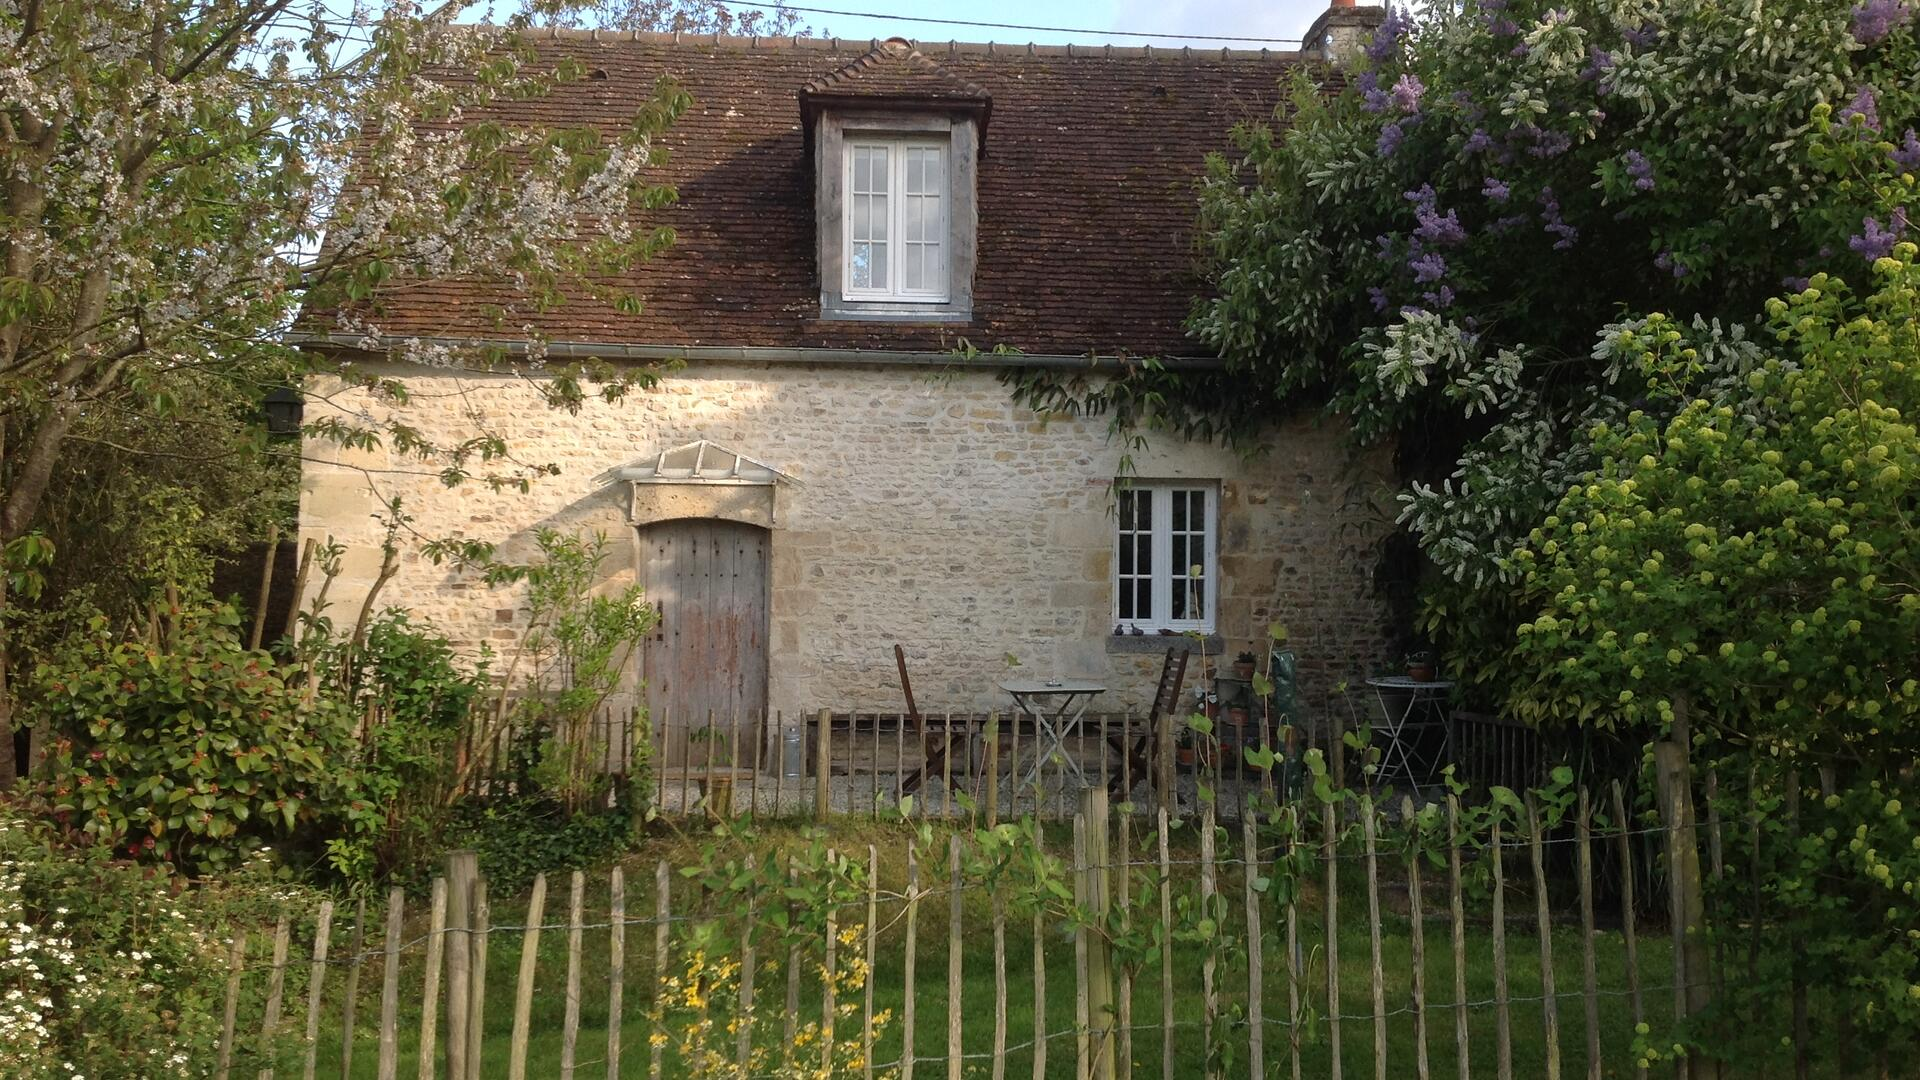 One bedroom baby friendly bolthole in Normandy, France � SCLC